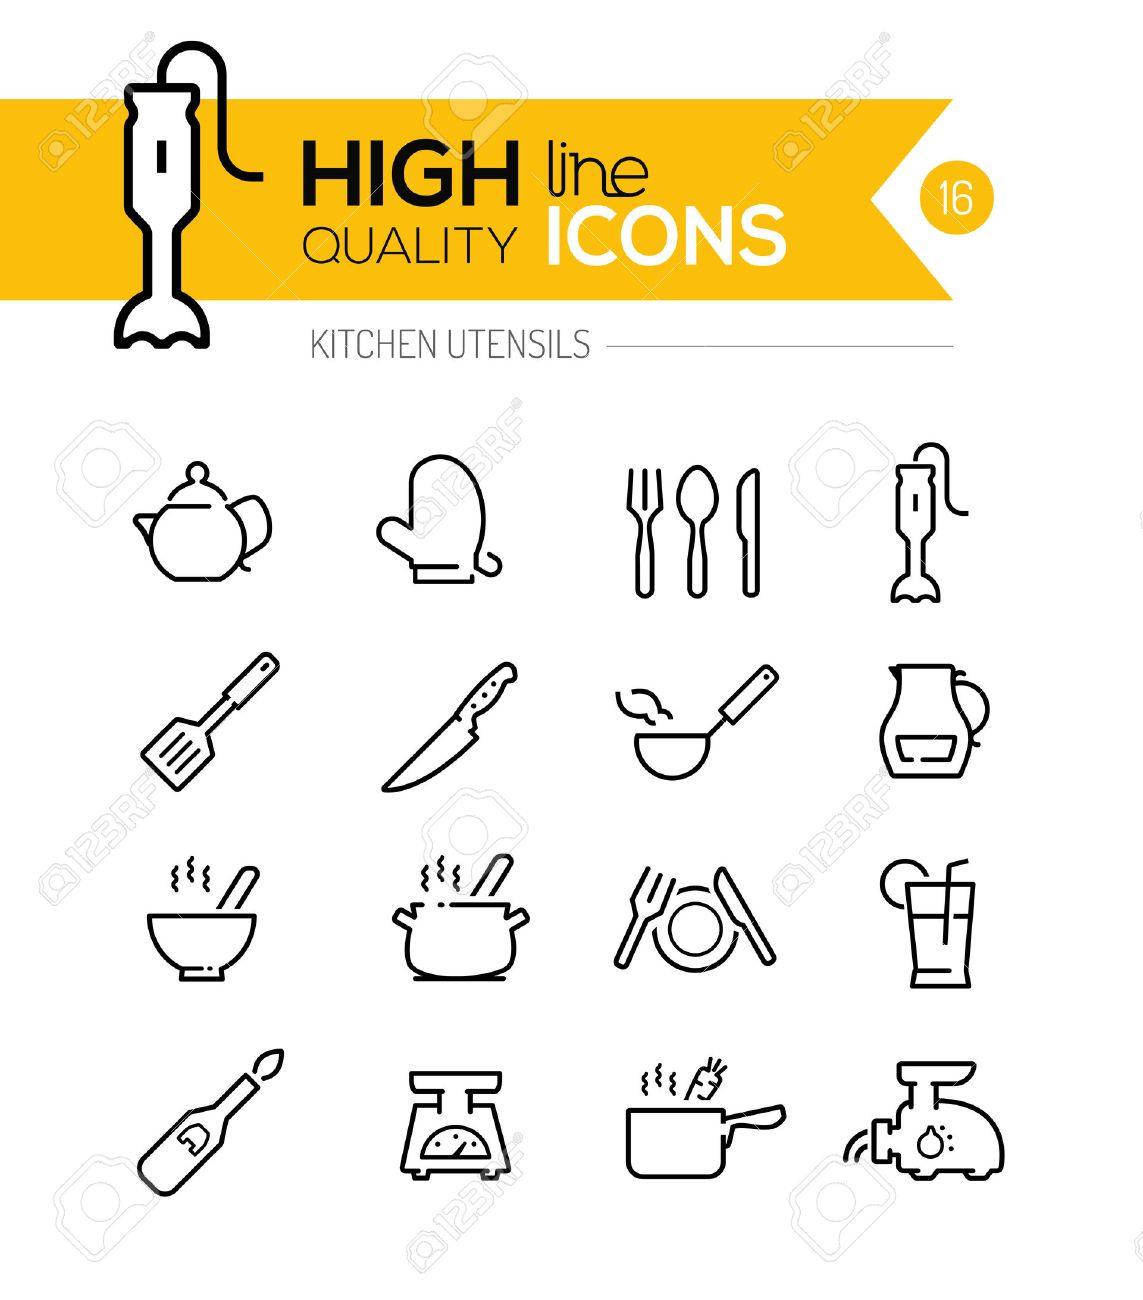 Kitchen Utensils line icons including, cookers, appliances, tools etc.. - 39090734